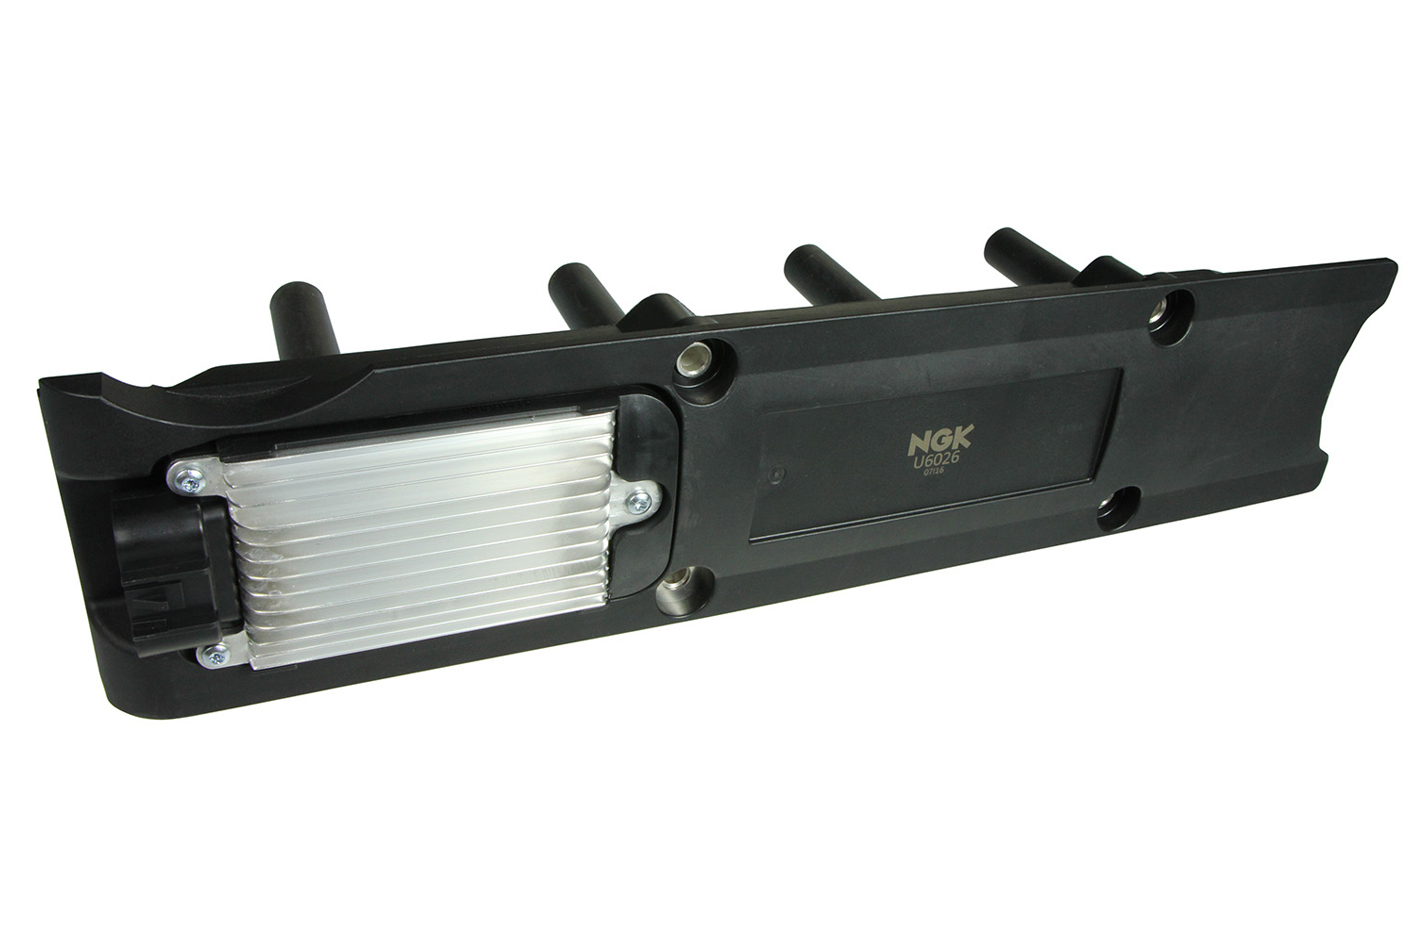 NGK U6026 Ignition Coil Pack, Coil-On-Plug Rail System, OE Specs, Black, Each